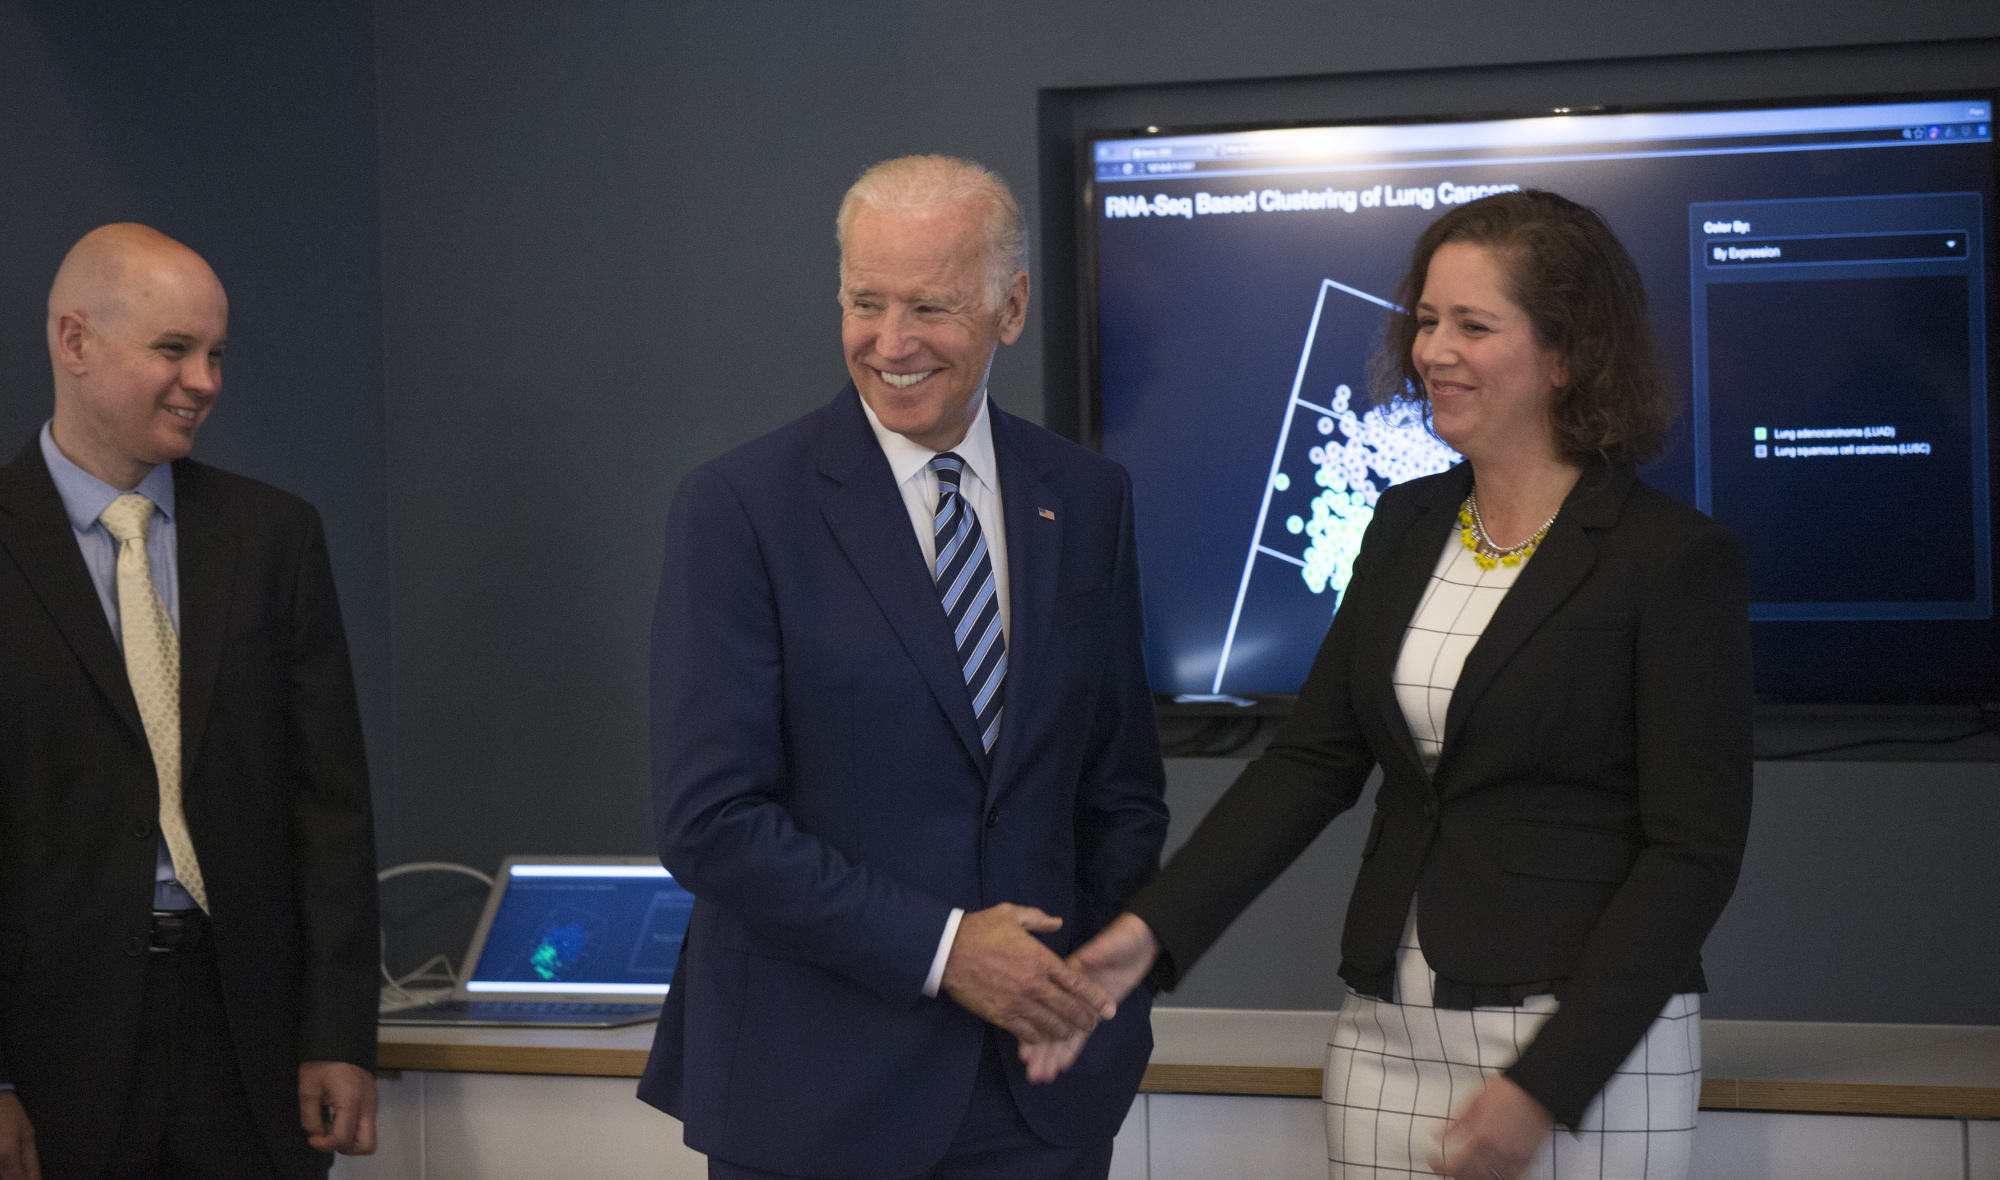 Vice President Joe Biden talks with Barbara Stranger, PhD and Piers Nash, PhD (left) during the GDC tour. (Photo by Robert Kozloff; source: Genomic Data Commons at UChicago heralds new era of data sharing for cancer research)